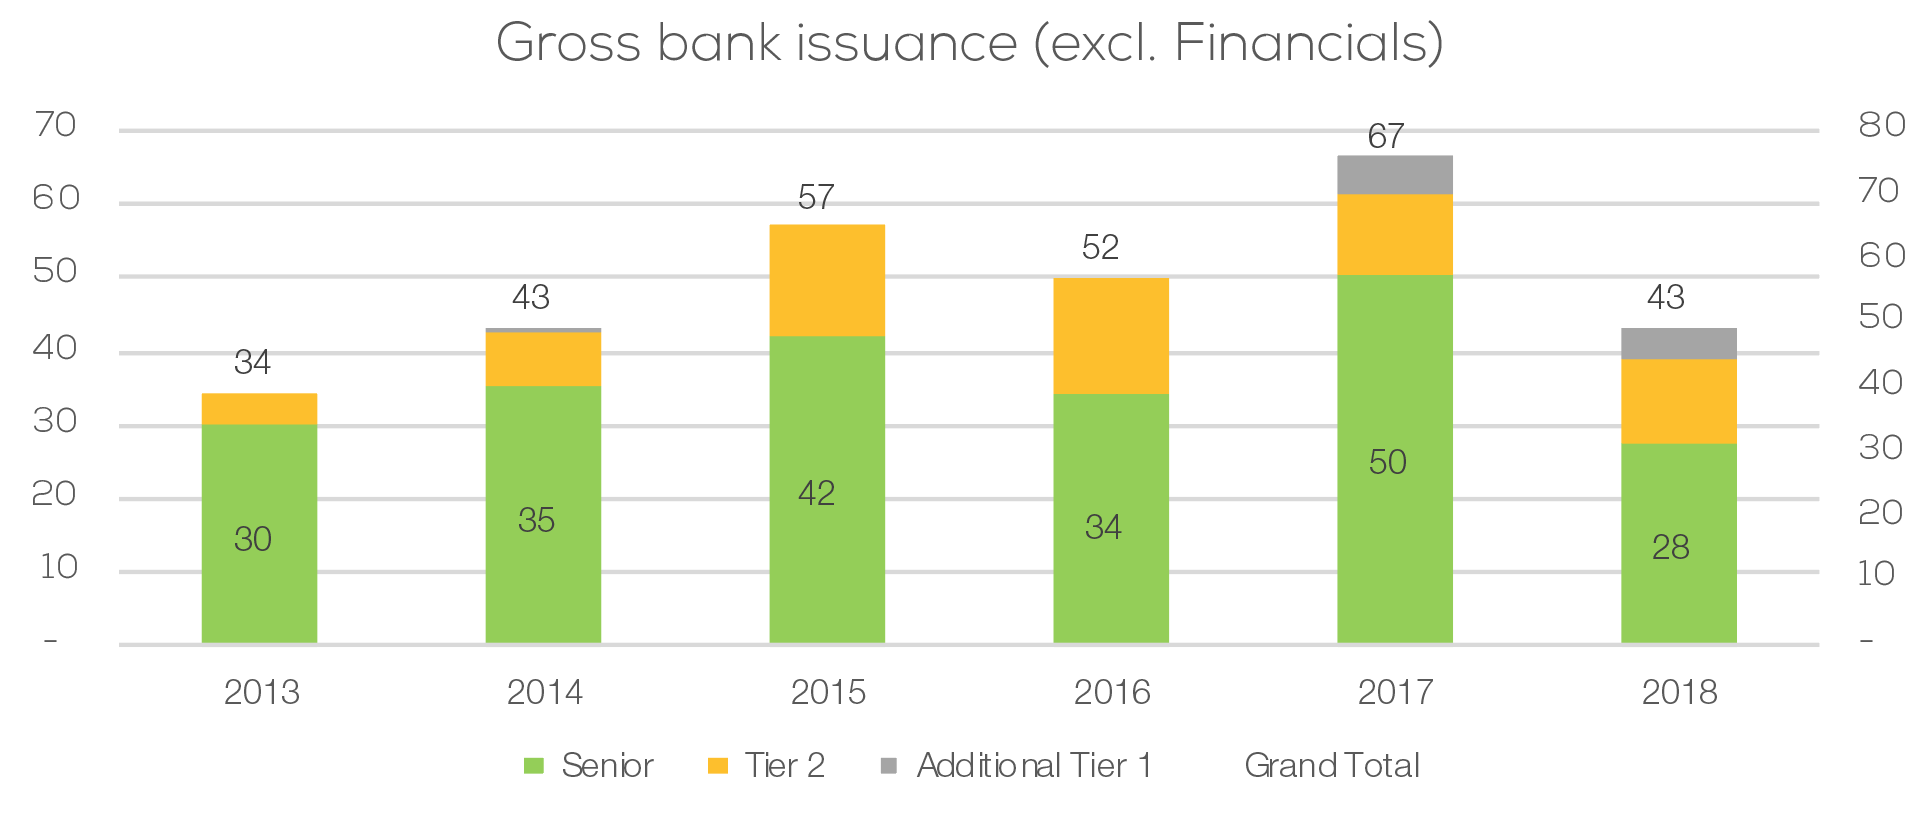 Gross bank issuance excl financials